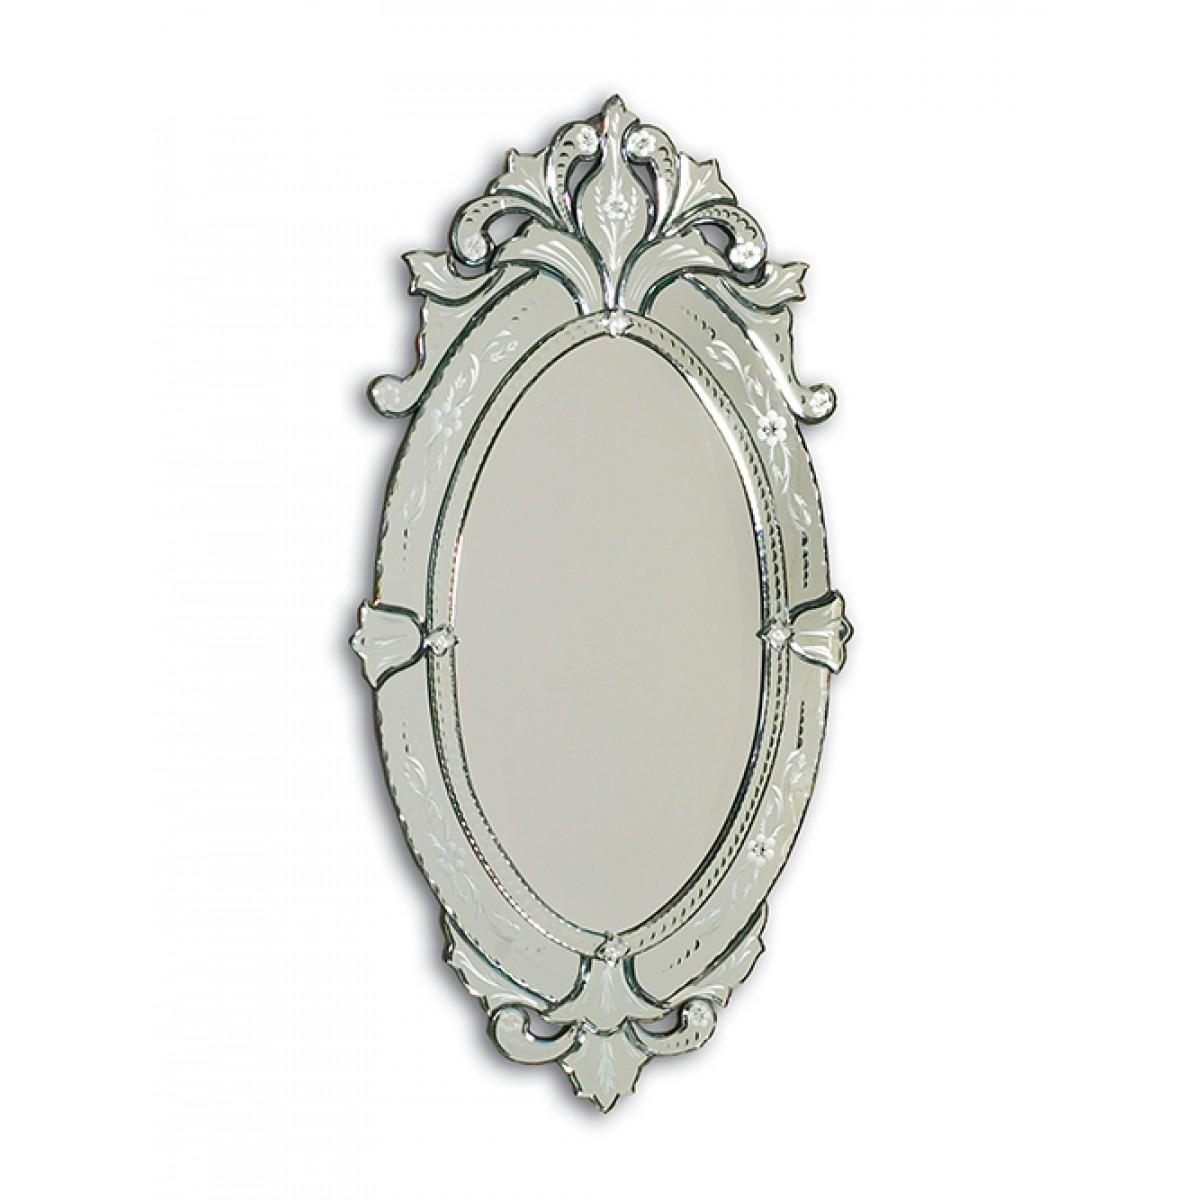 Featured Image of Venetian Oval Mirror